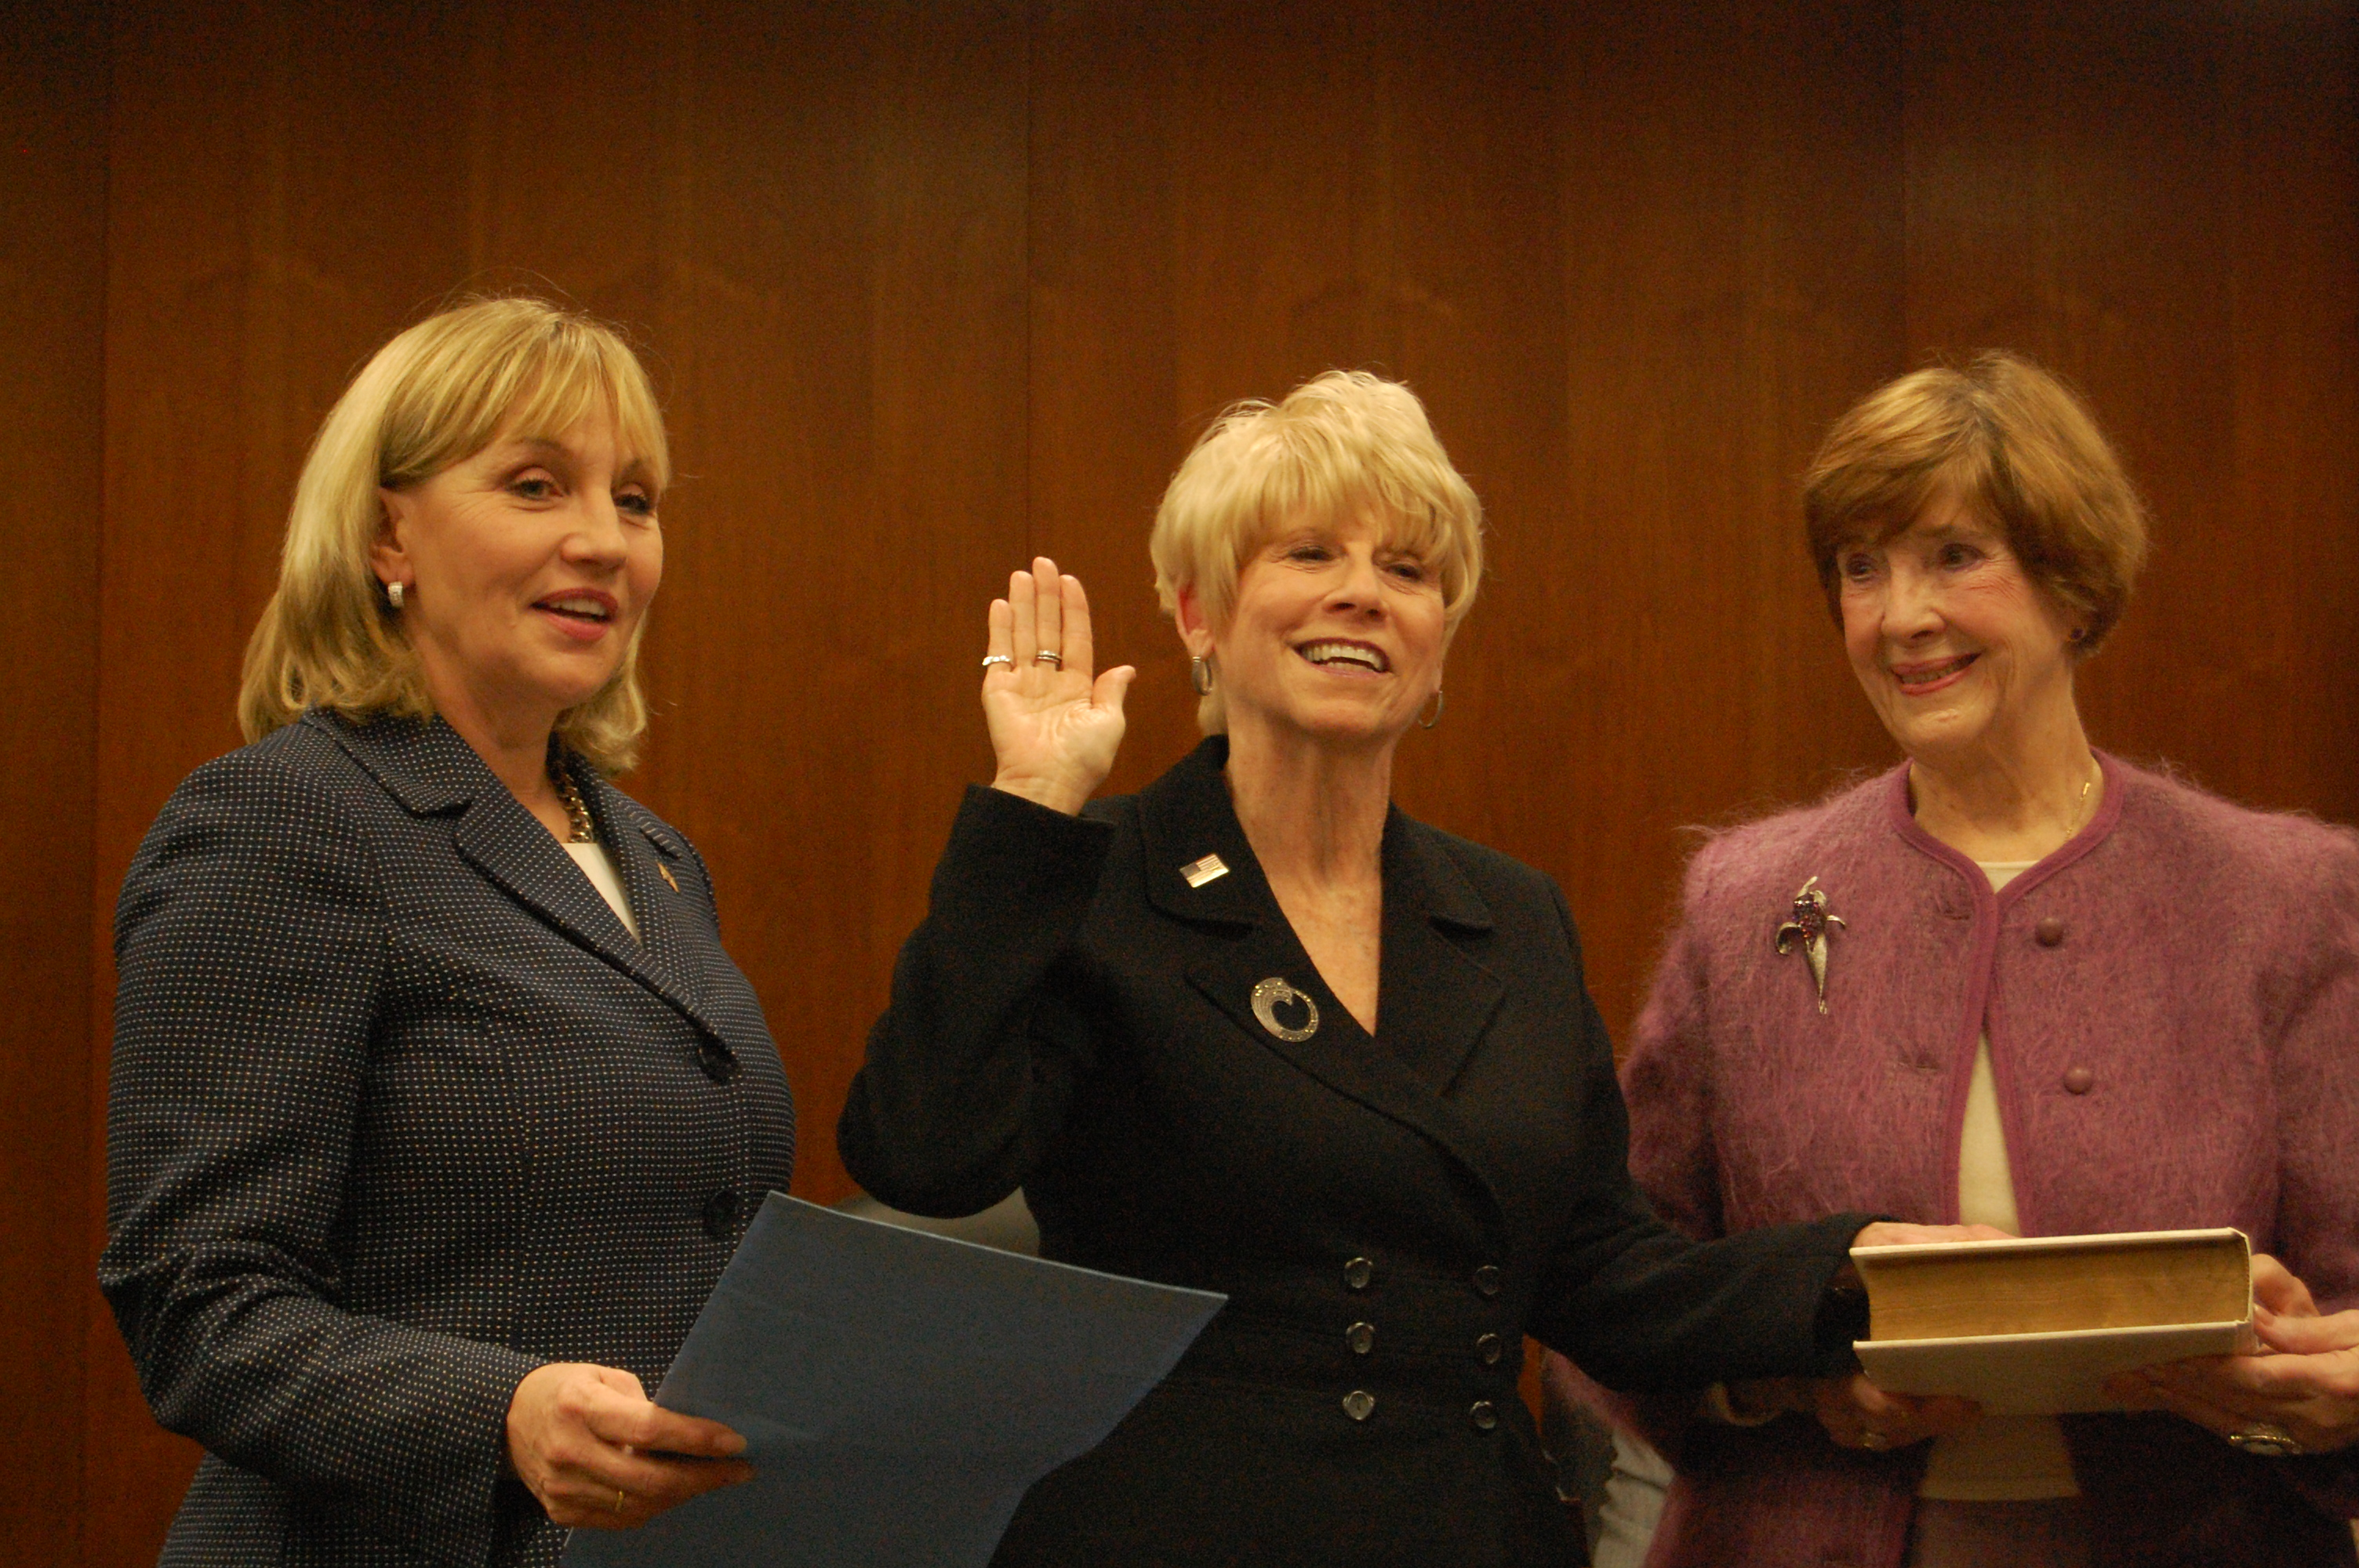 Lt. Gov. Kim Guadagno swears in Ocean County Freeholder Virginia Haines. (Photo: Daniel Nee)